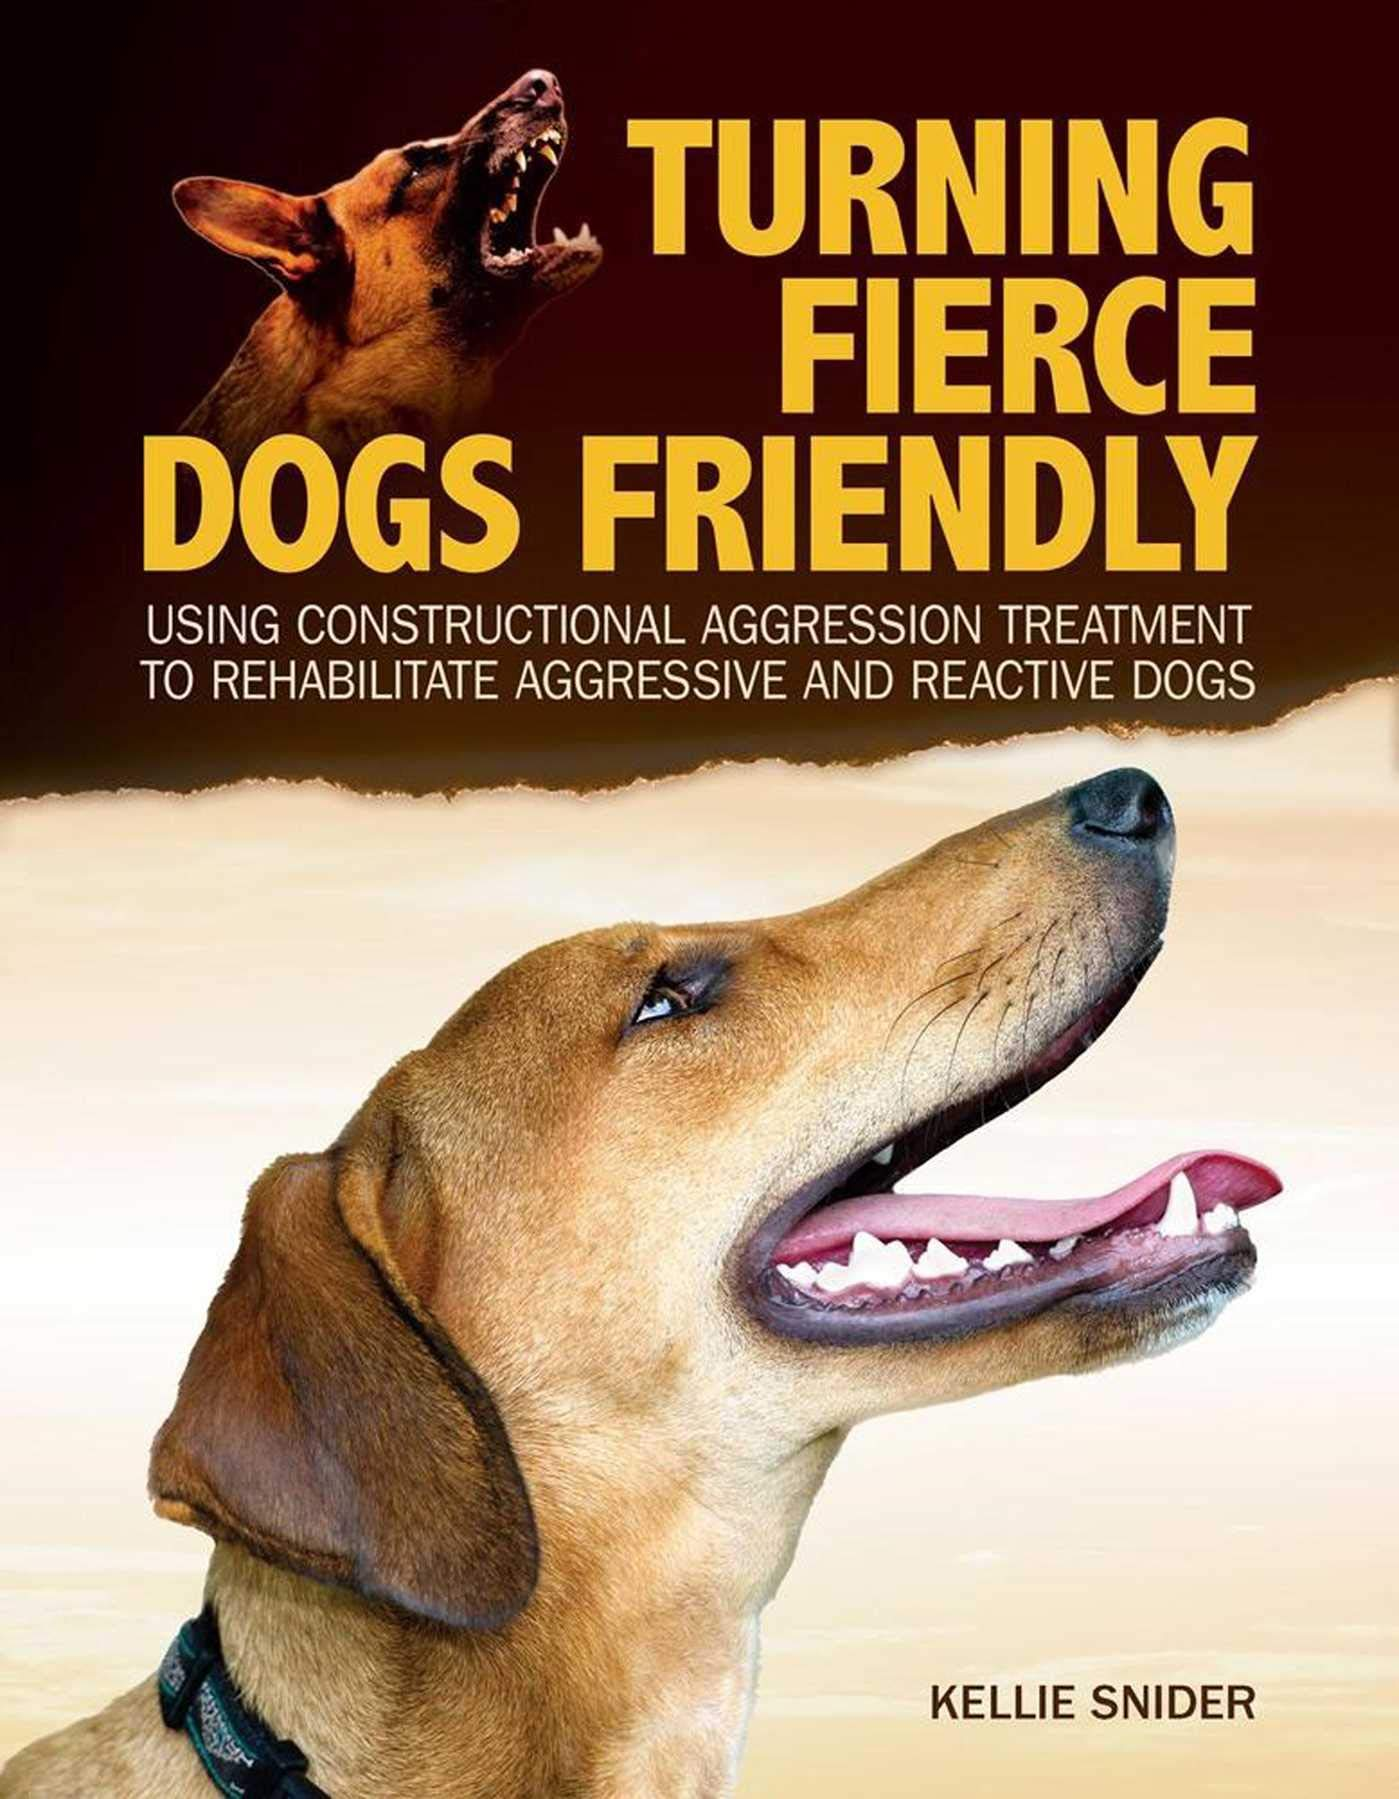 Turning-Fierce-Dogs-Friendly-Using-Constructional-Aggression-Treatment-to-Rehabilitate-Aggressive-and-Reactive-Dogs